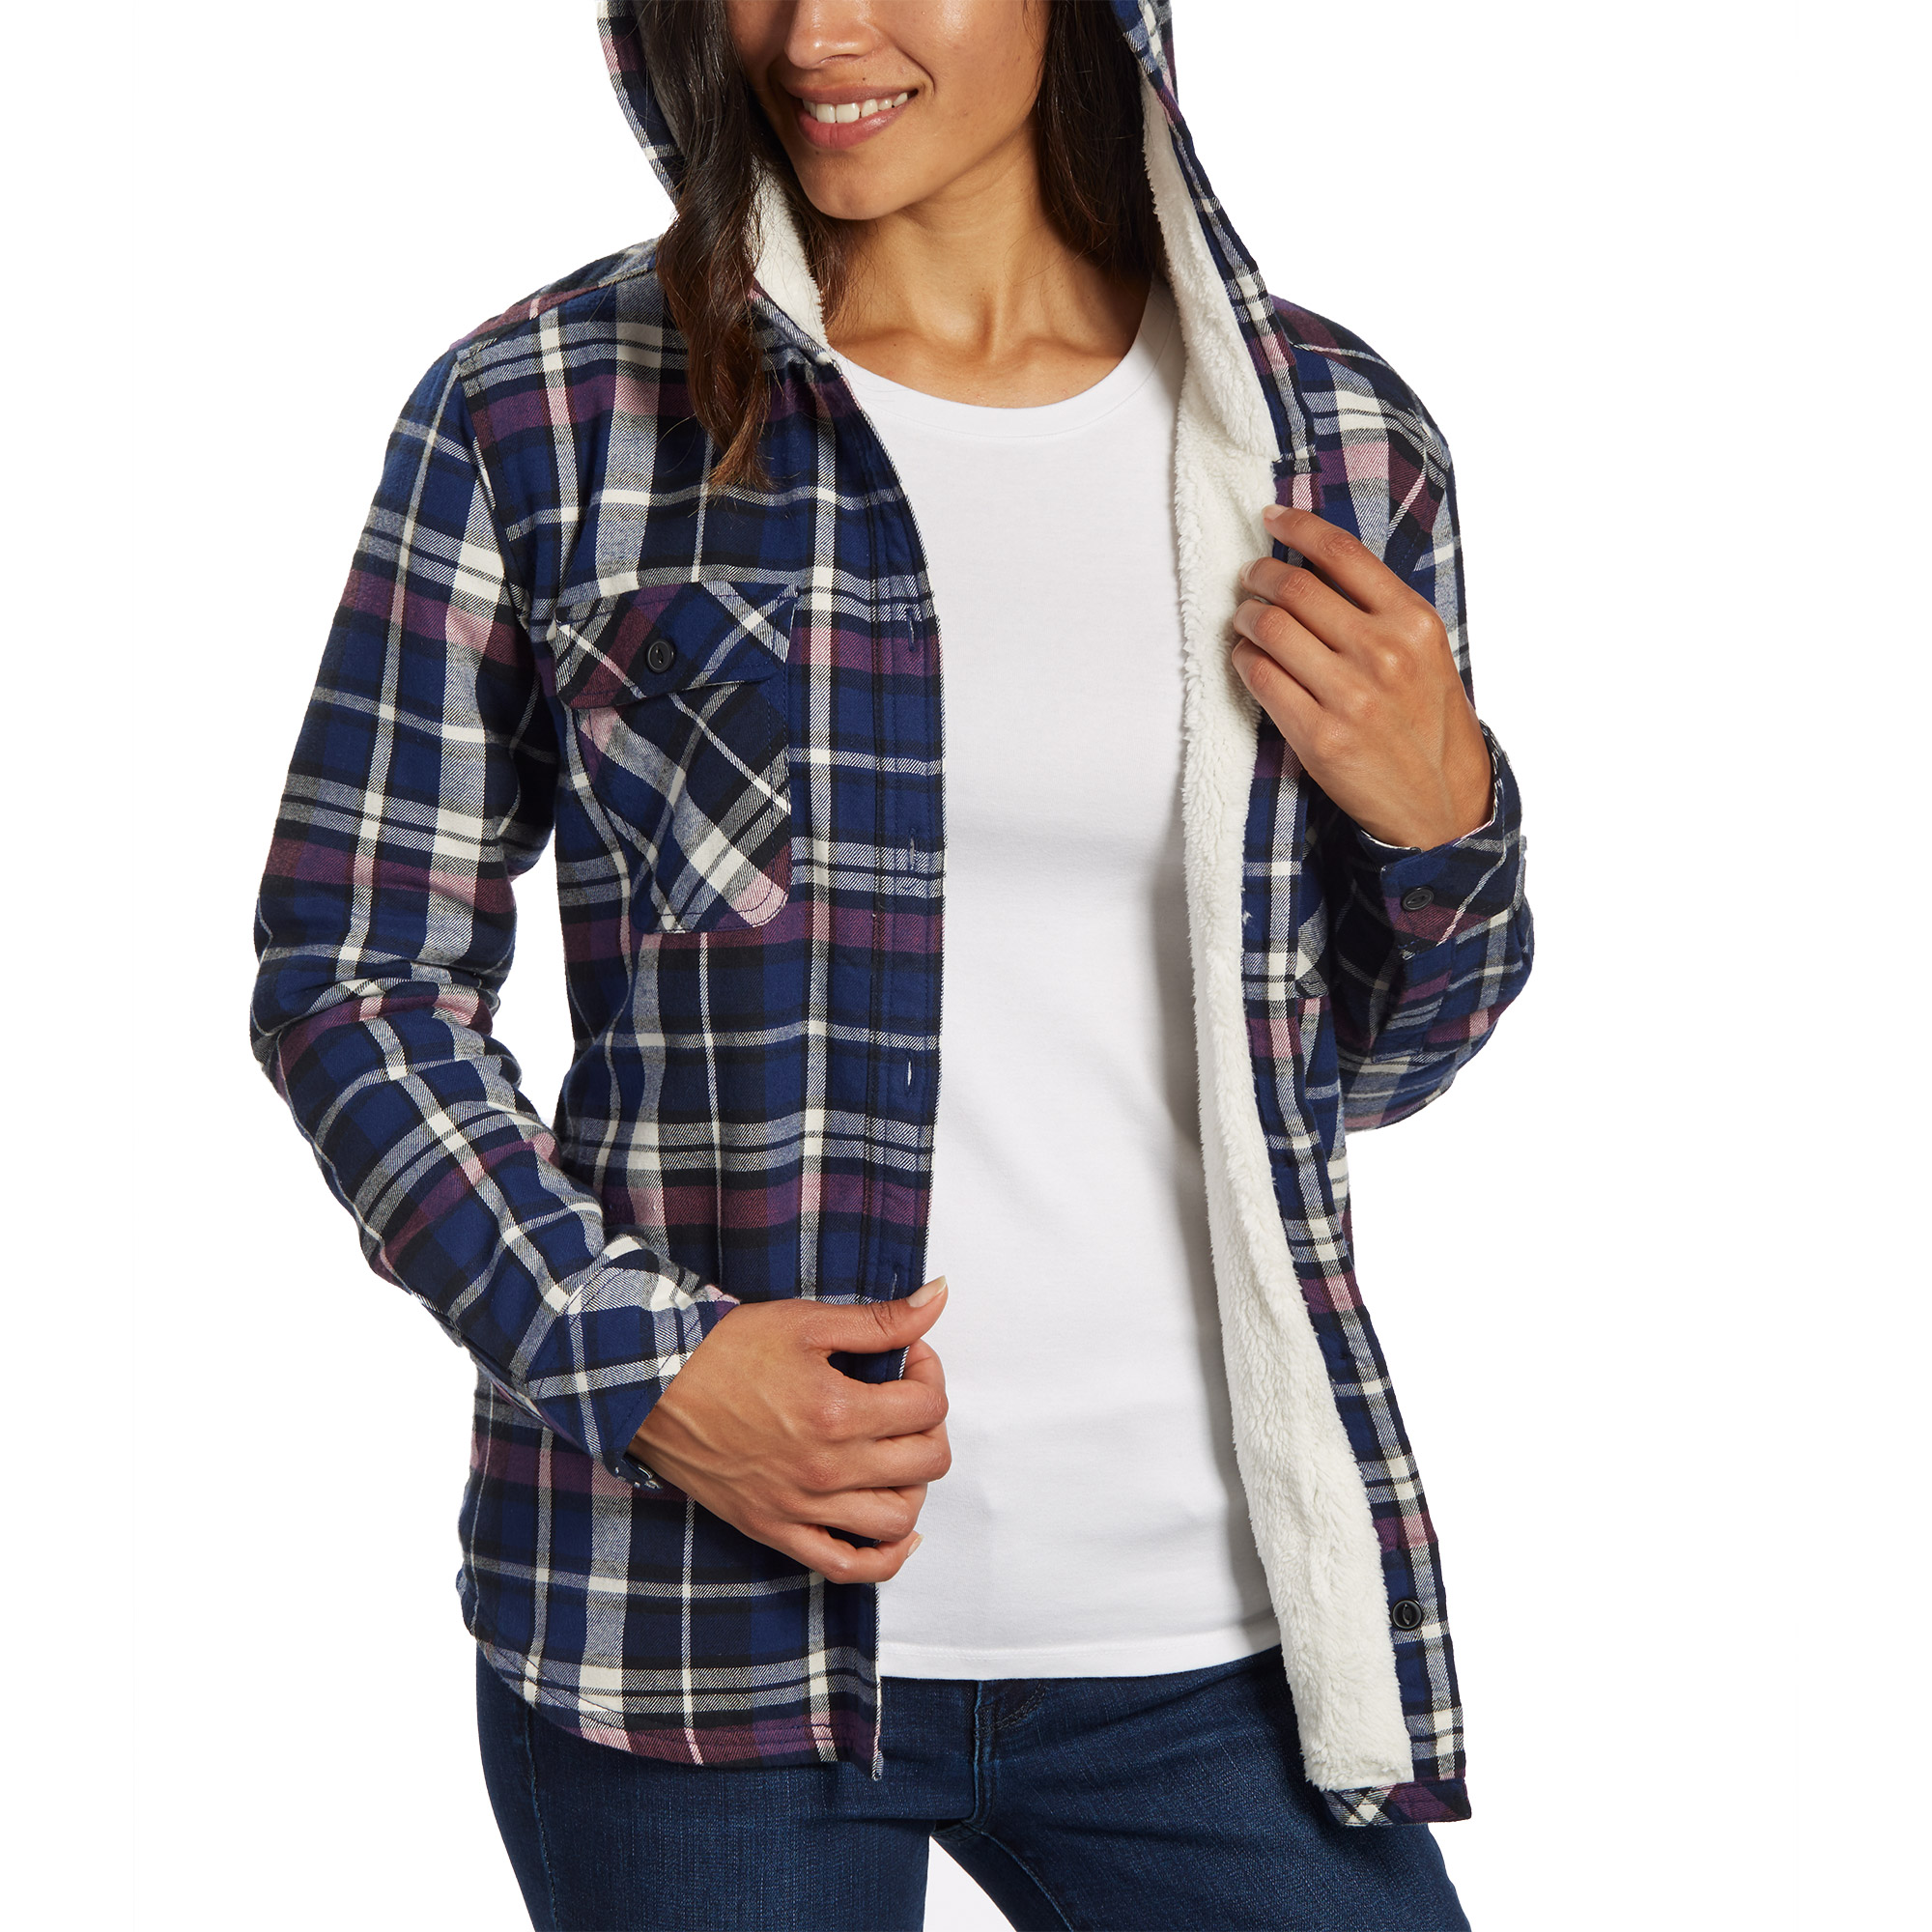 5f354426adfb Boston-Trader-Ladies-039-Sherpa-Lined-Hooded-Flannel vista